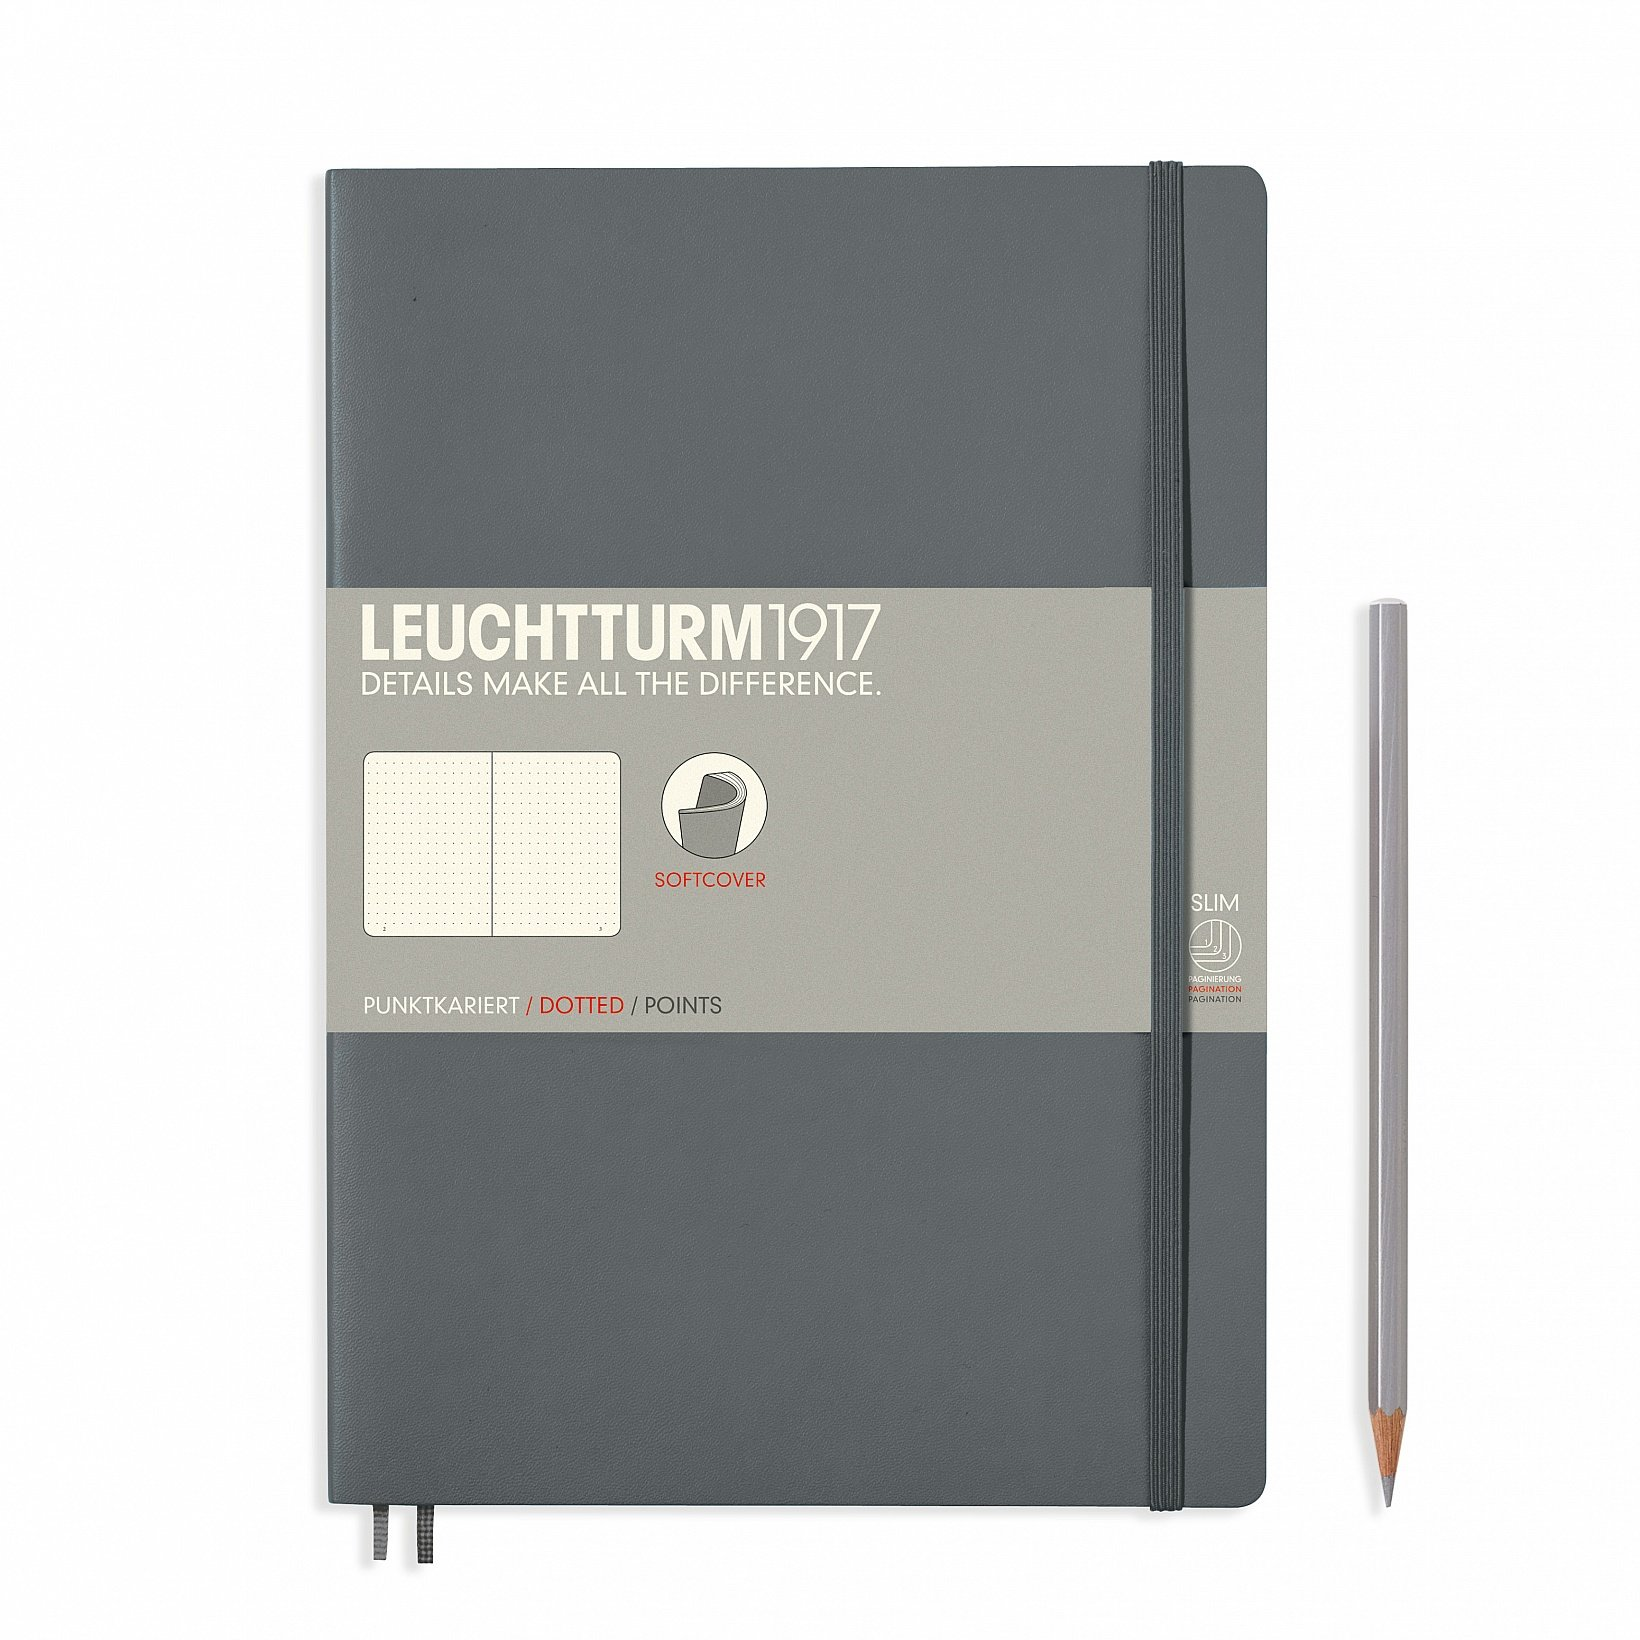 Leuchtturm 1917 Soft Cover Composition B5 Notebook 7'' x 10'', Anthracite Gray, Dotted / Points